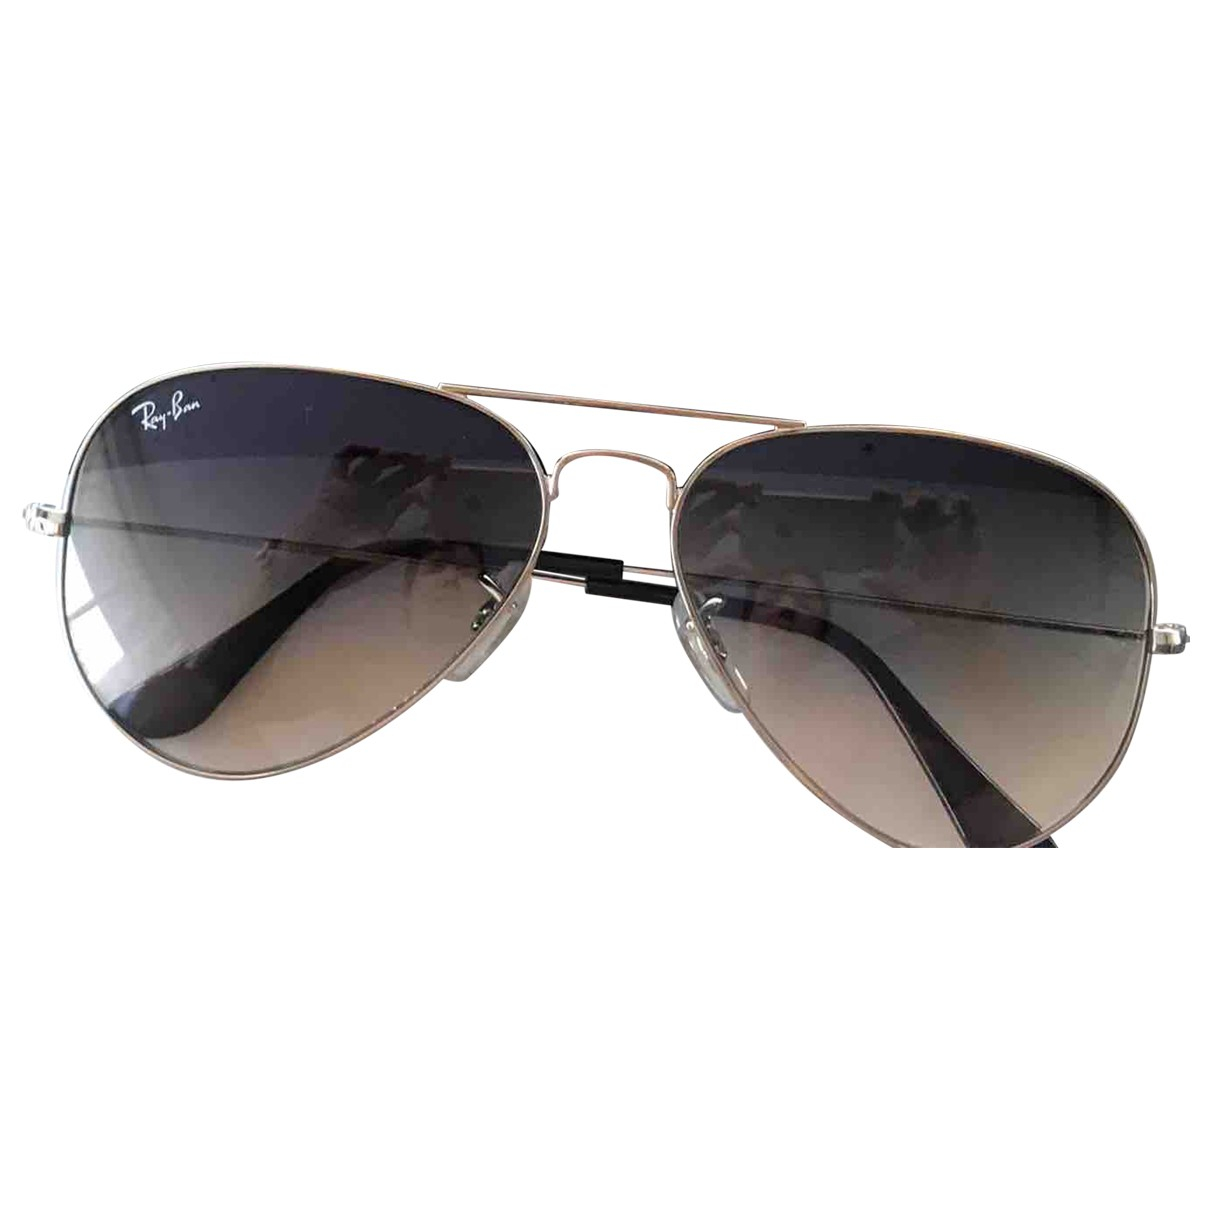 Ray-ban Aviator Grey Metal Sunglasses for Men N